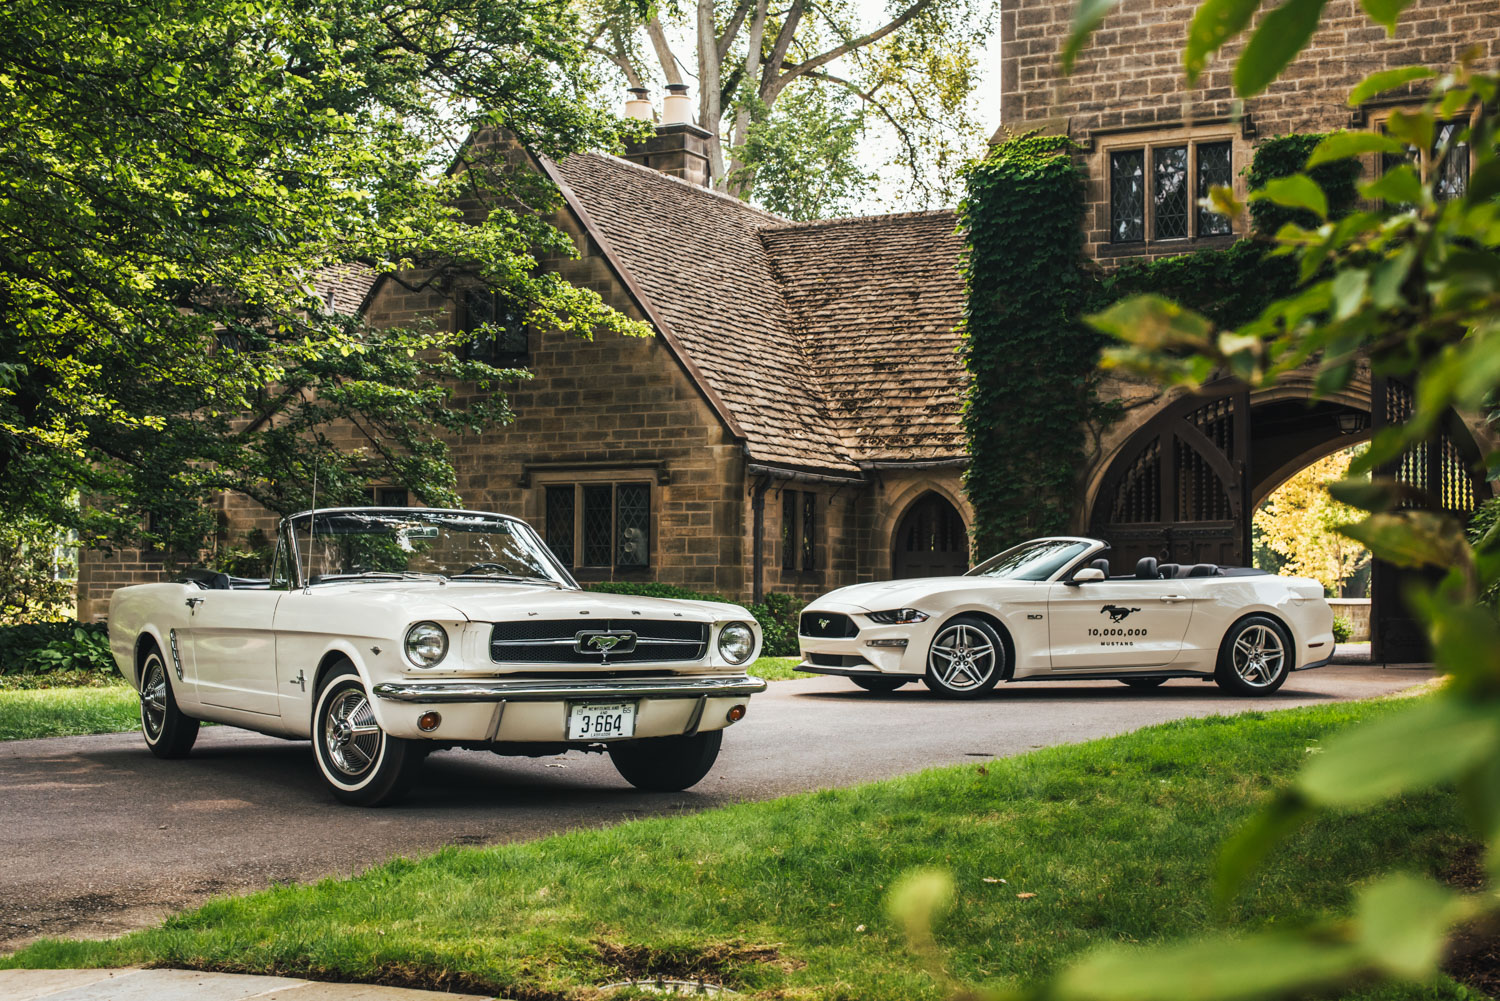 Mustang 001 and 10 million